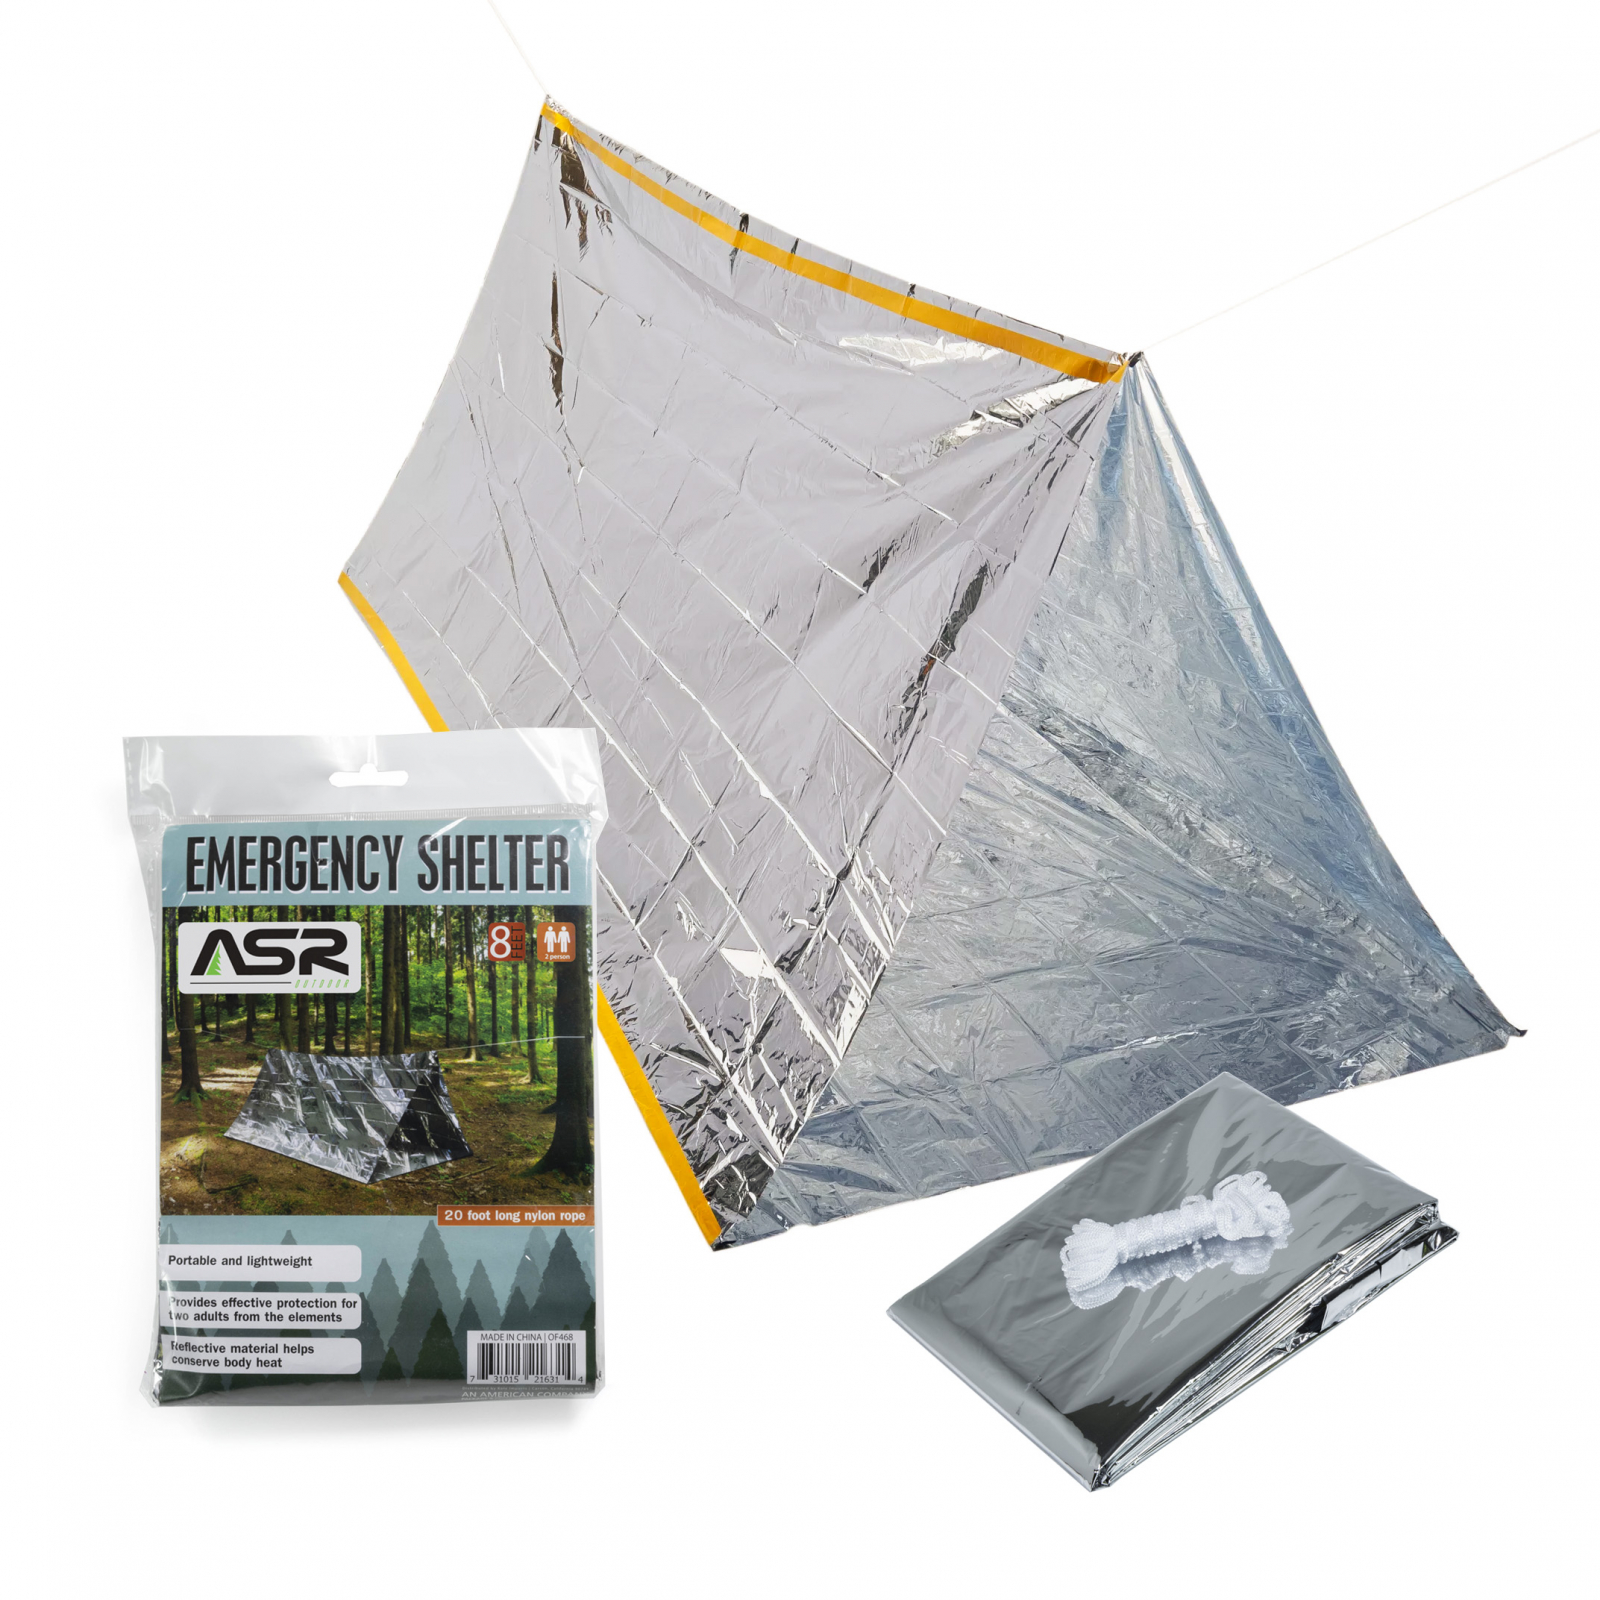 ASR Outdoor 2 Person Reflective Emergency Shelter Tent